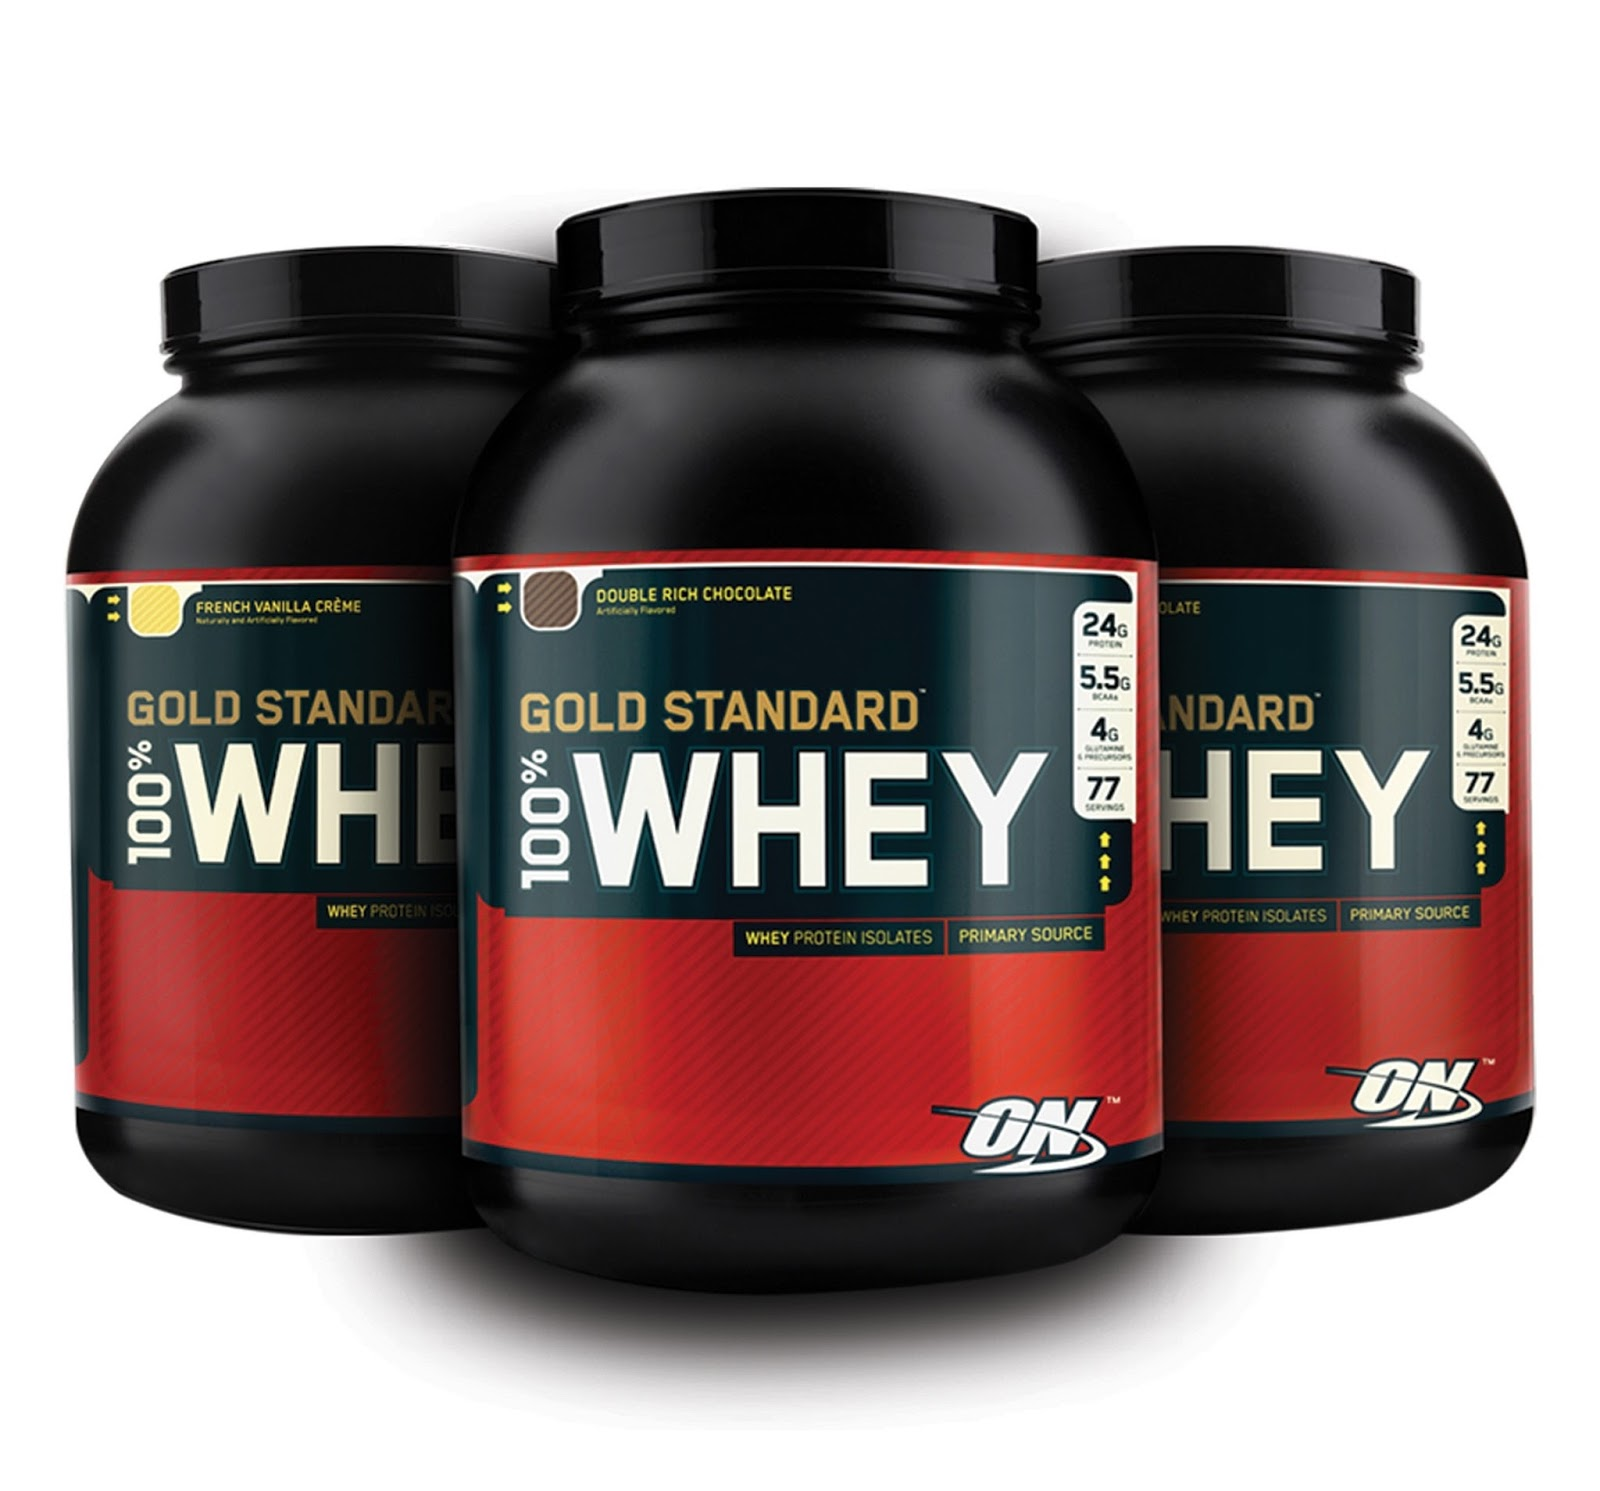 Best Protein For Building Muscles Whey Protein As A